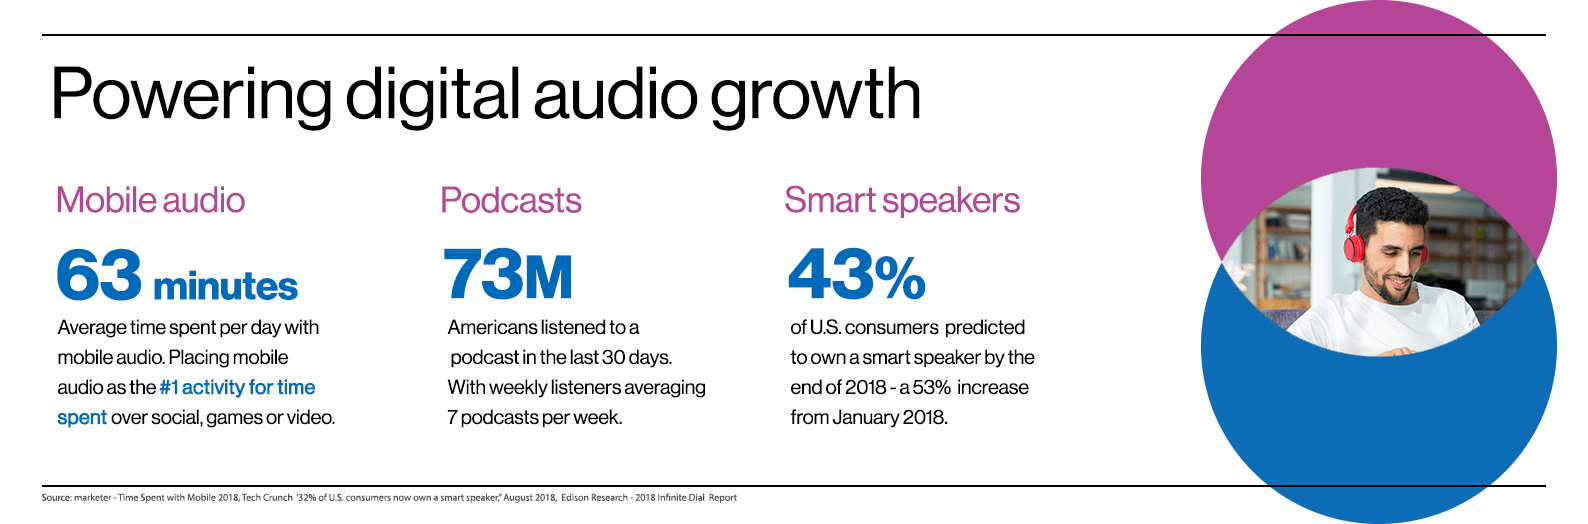 Powering digital audio growth